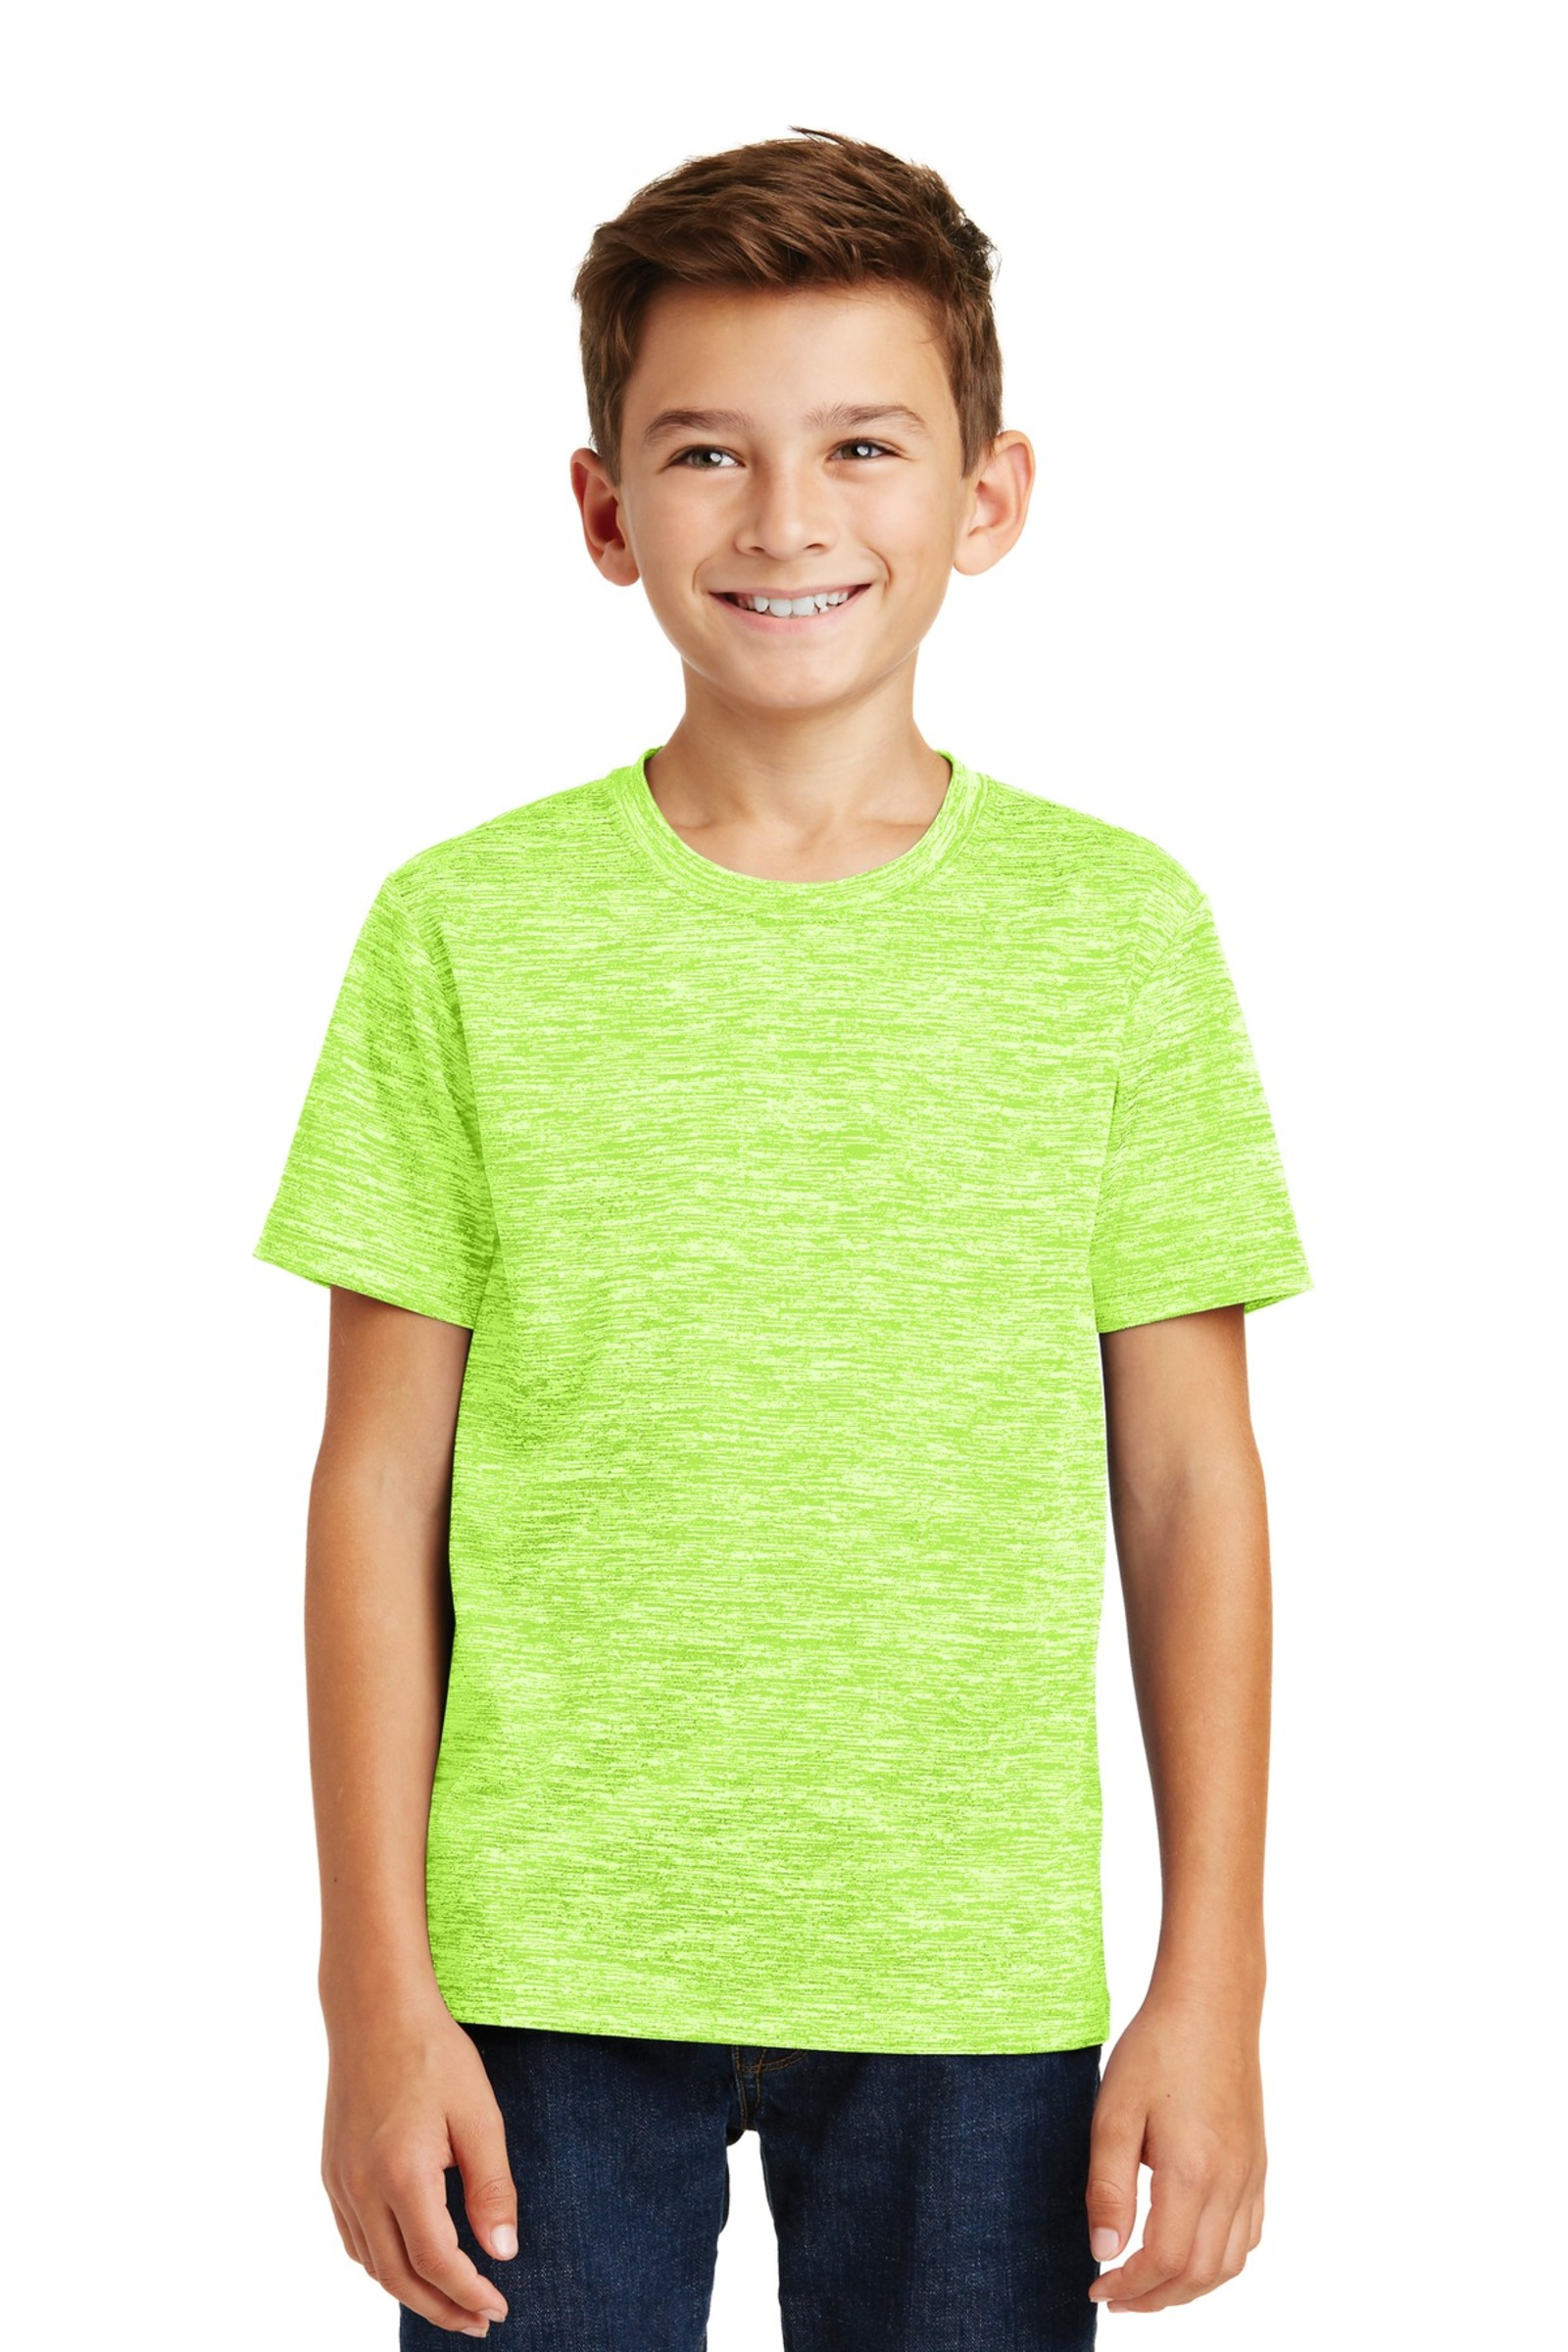 Sport-Tek Embroidered Youth PosiCharge Electric Heather Tee